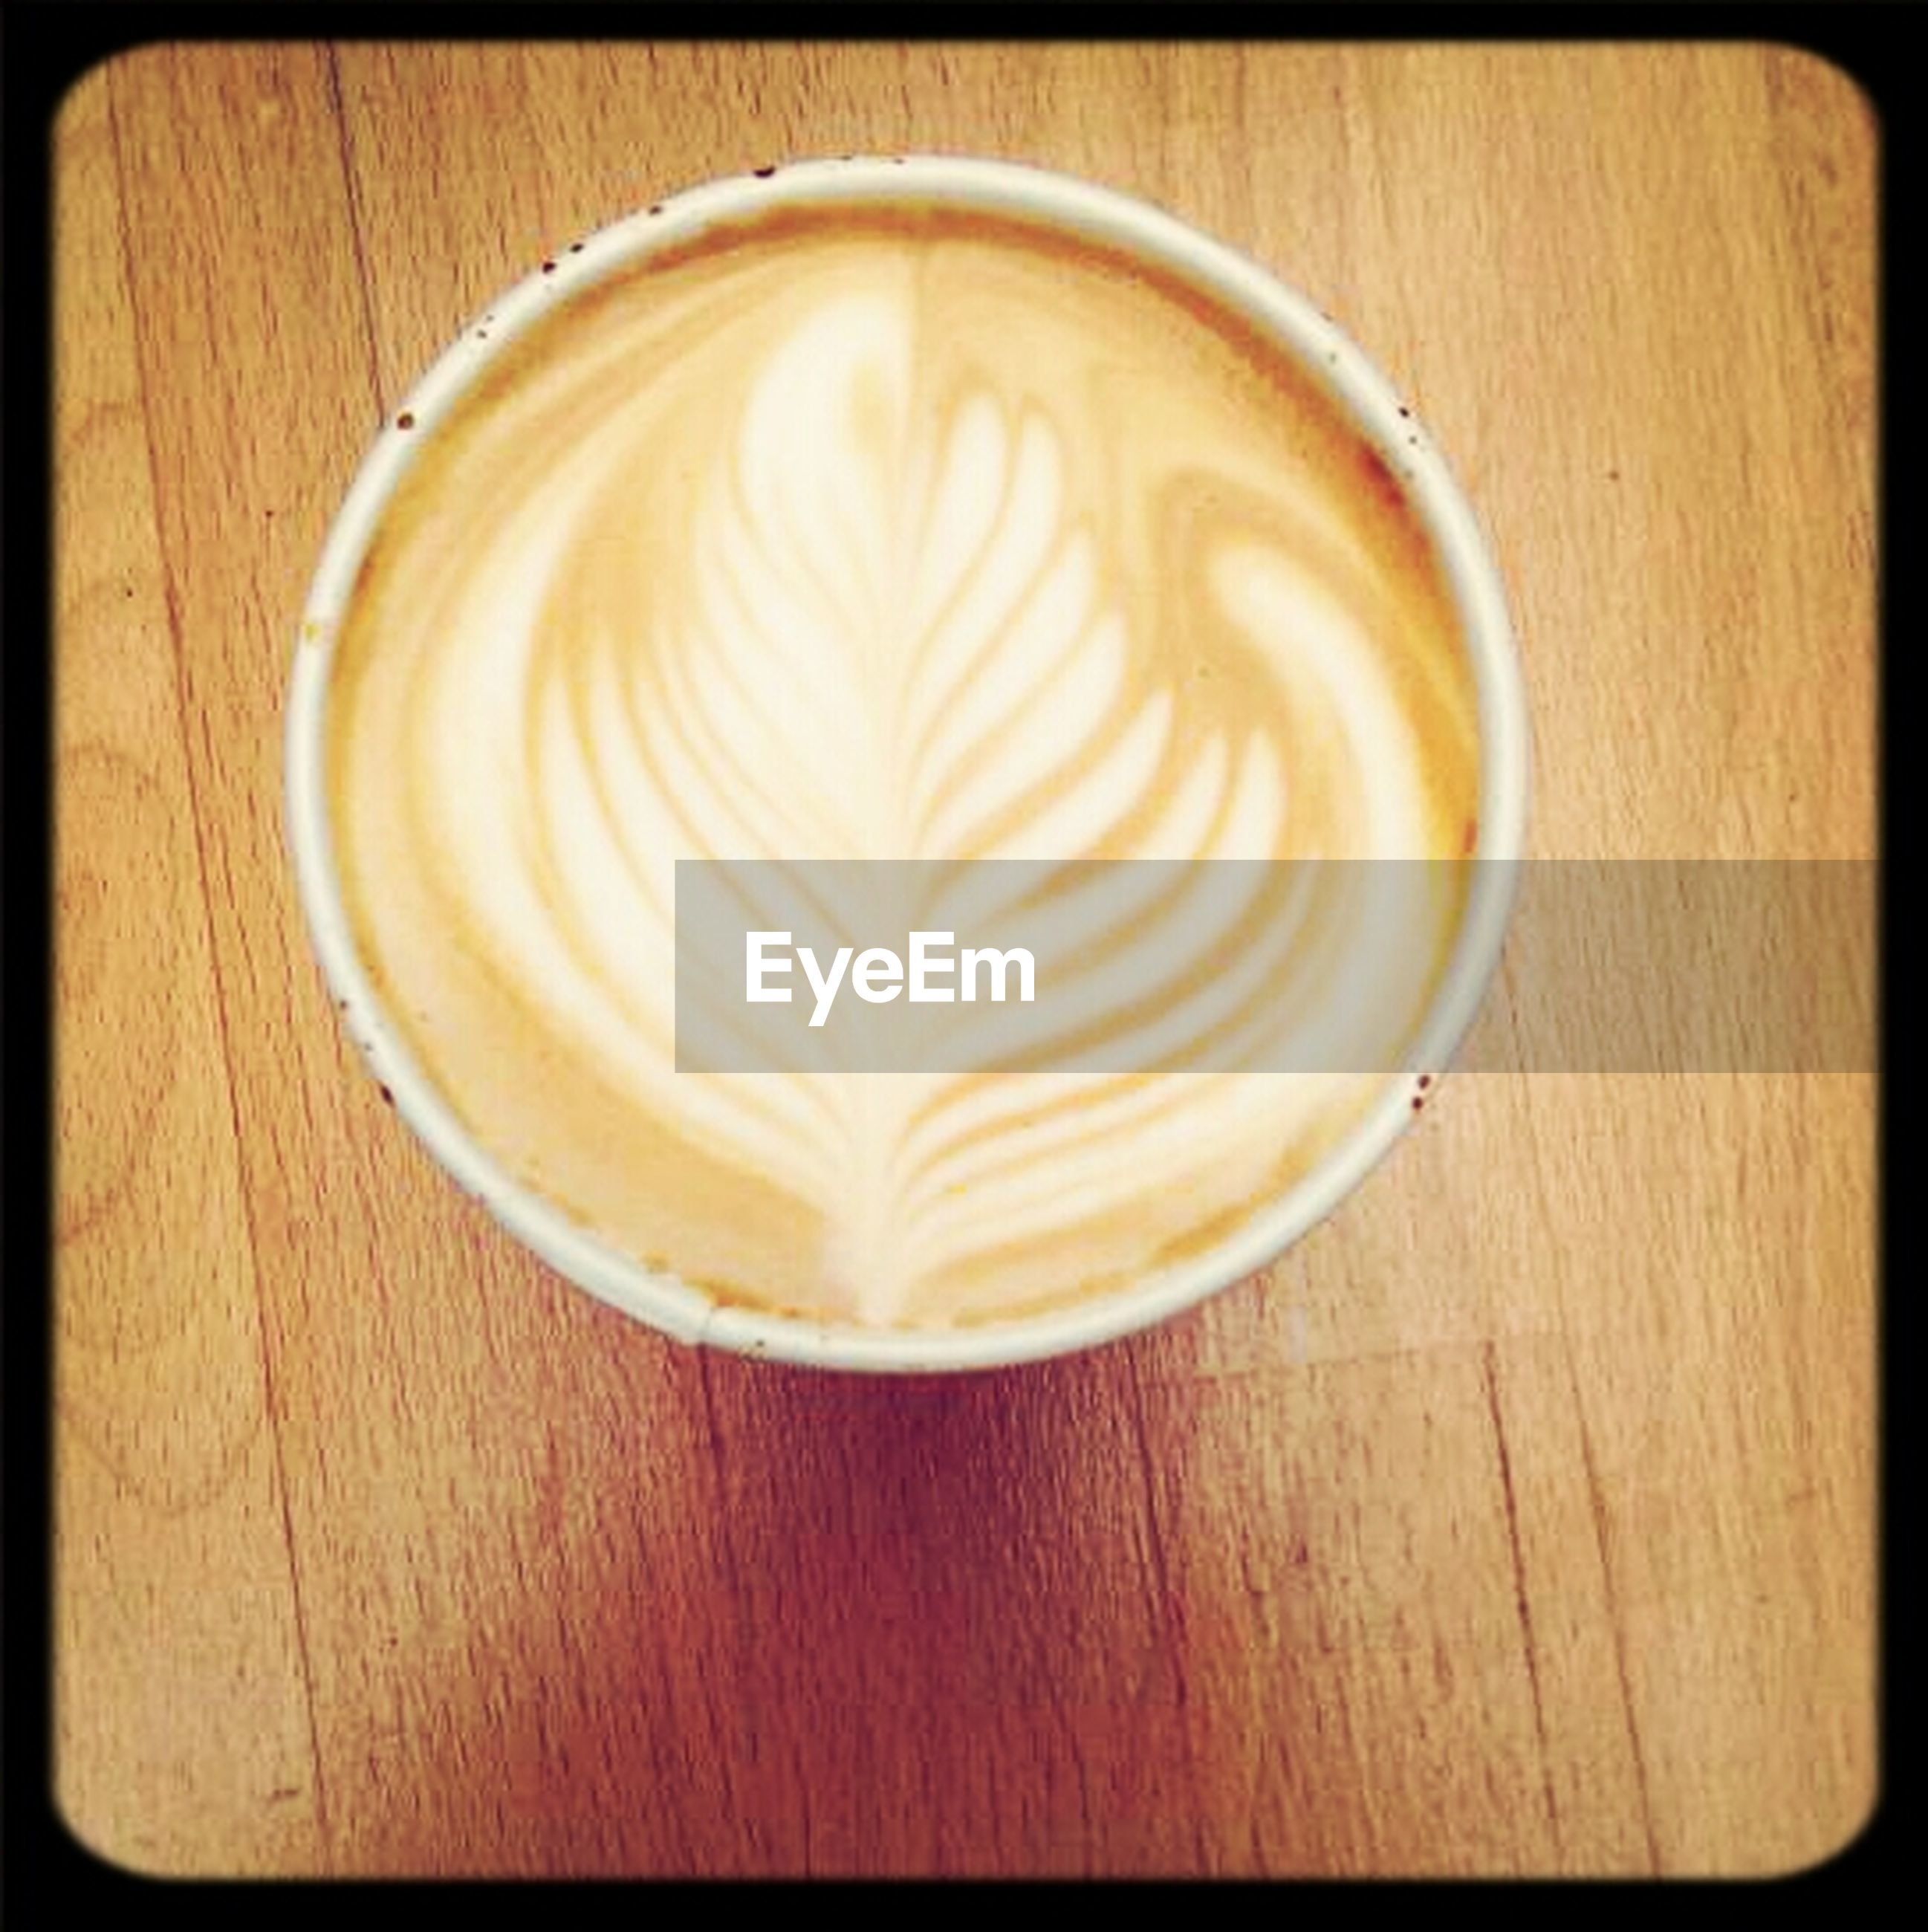 food and drink, table, refreshment, indoors, drink, coffee cup, coffee - drink, transfer print, frothy drink, freshness, froth art, cappuccino, still life, auto post production filter, saucer, wood - material, close-up, high angle view, directly above, heart shape